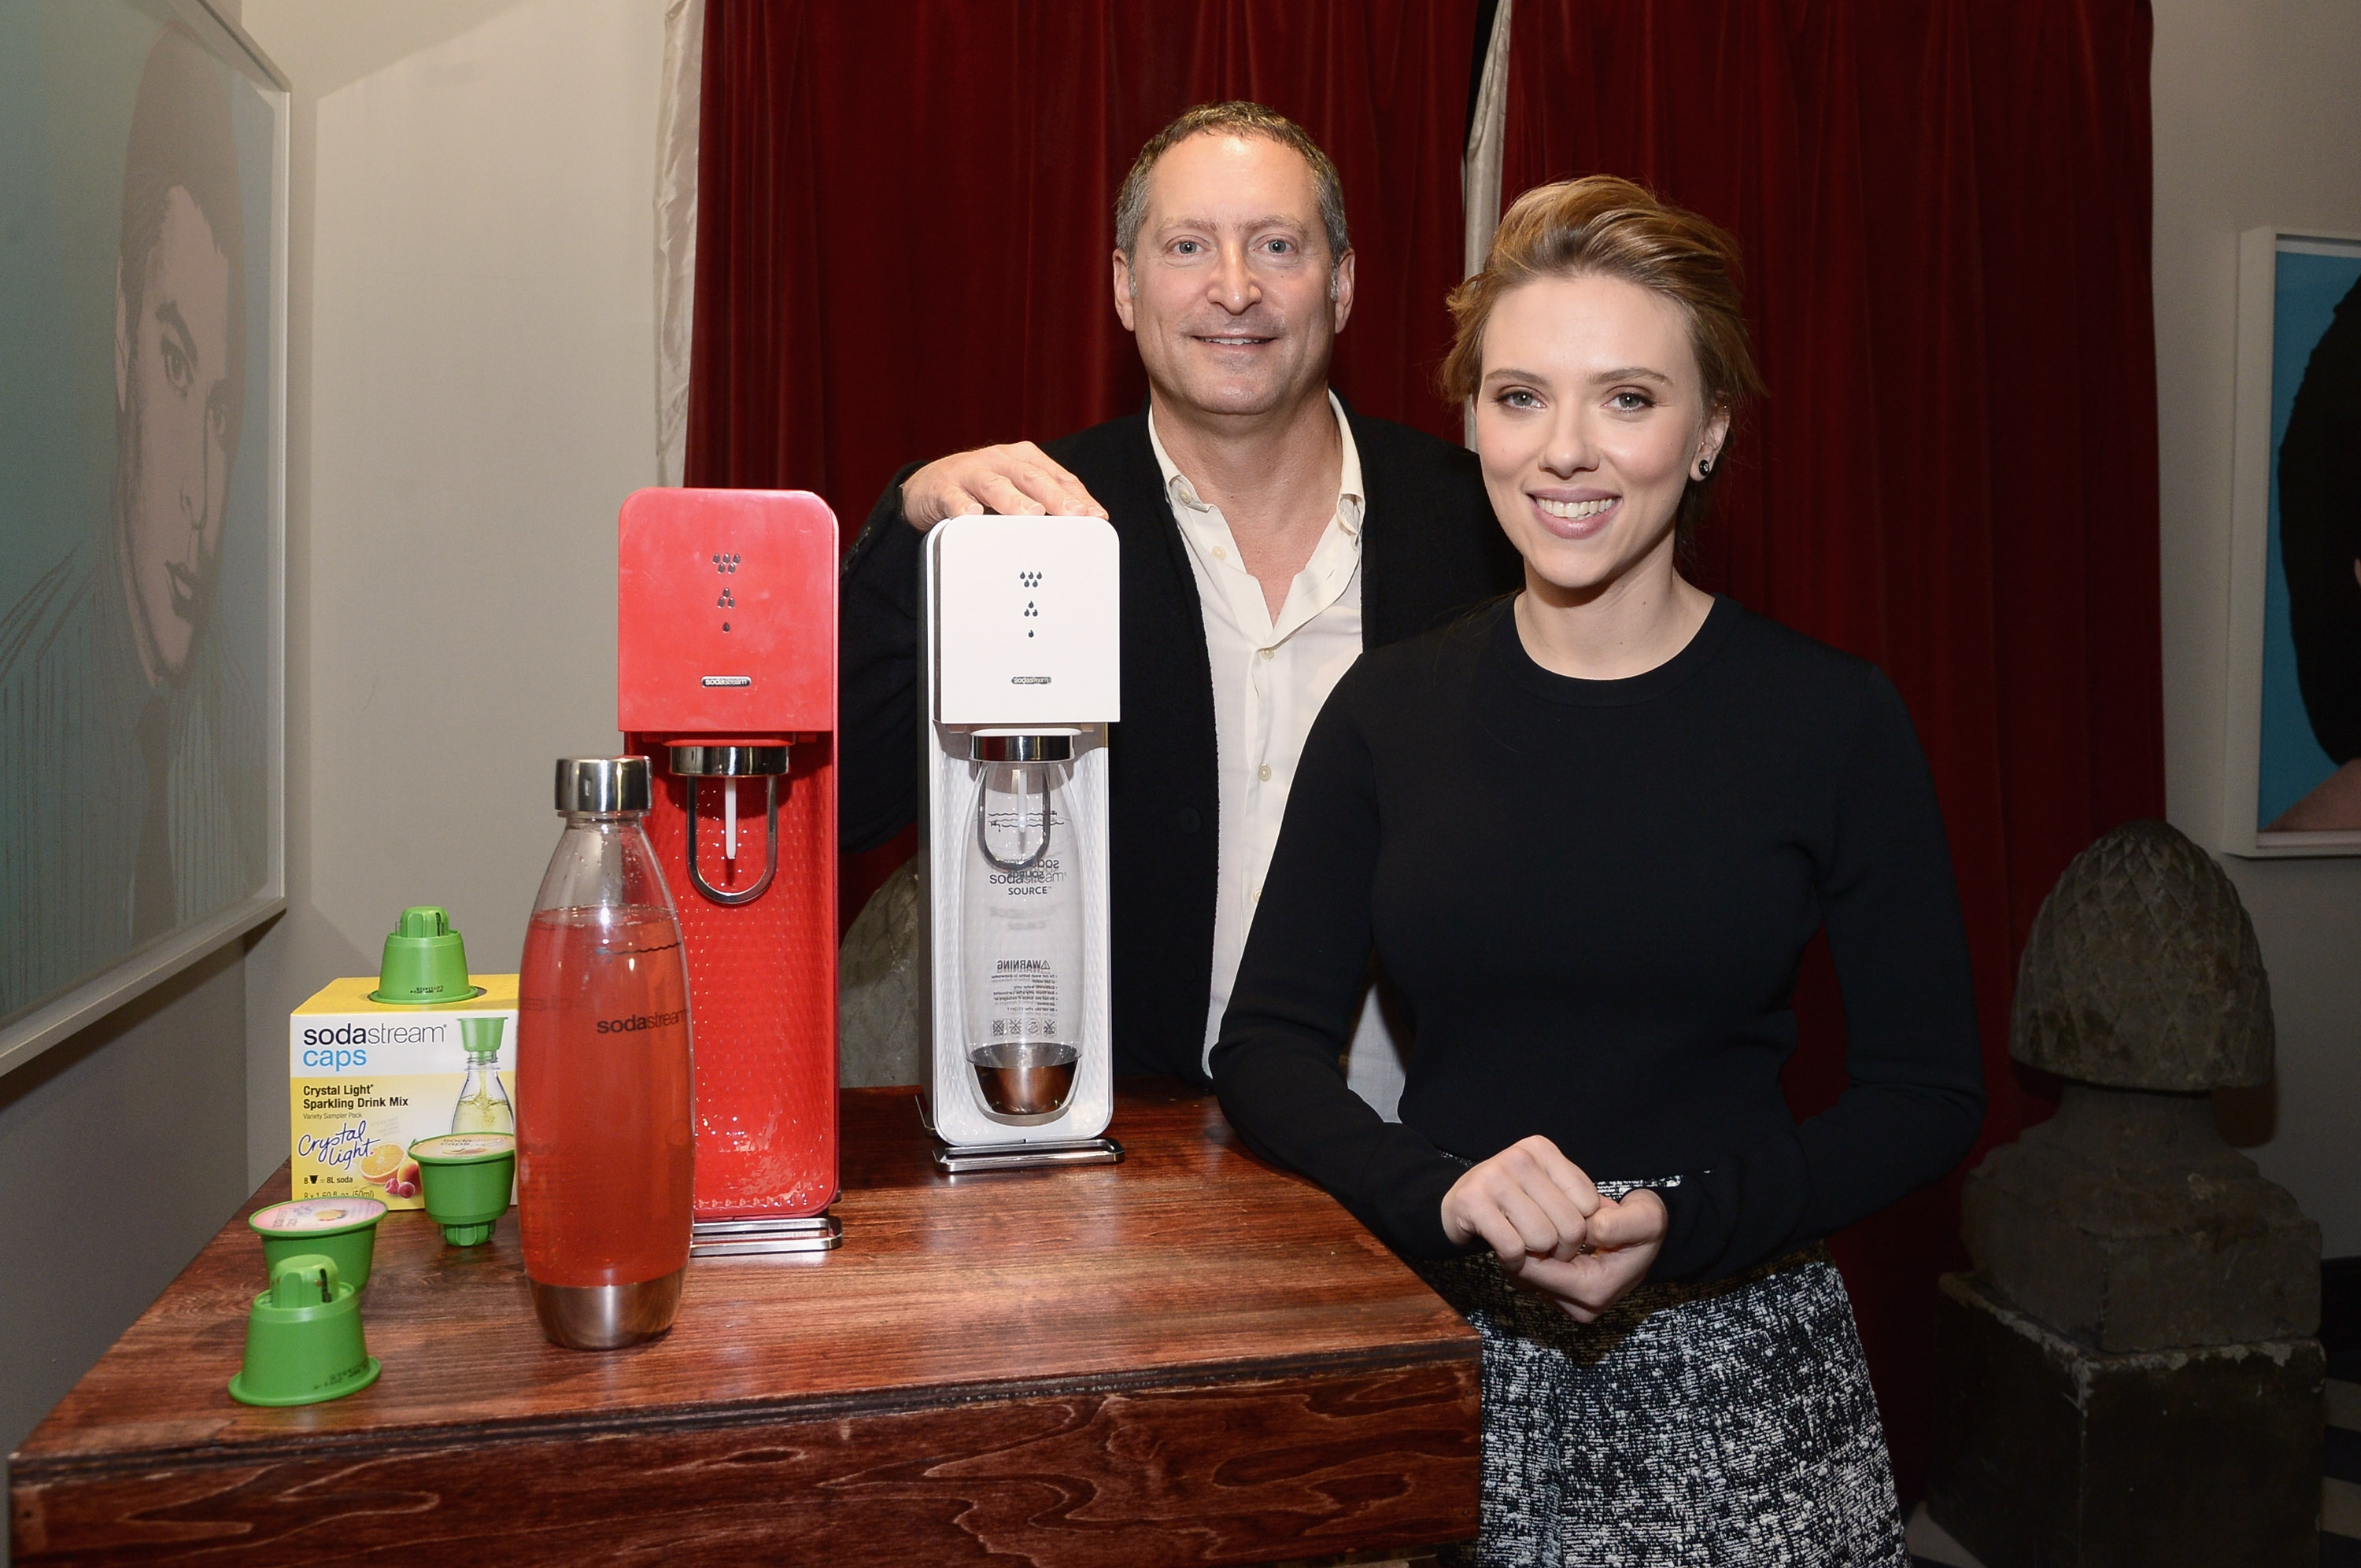 SodaStream CEO Daniel Birnbaum announces Scarlett Johansson as the company's first-ever global brand ambassador on Jan. 10, 2014 in New York City. Mike Coppola/Getty Images for SodaStream)